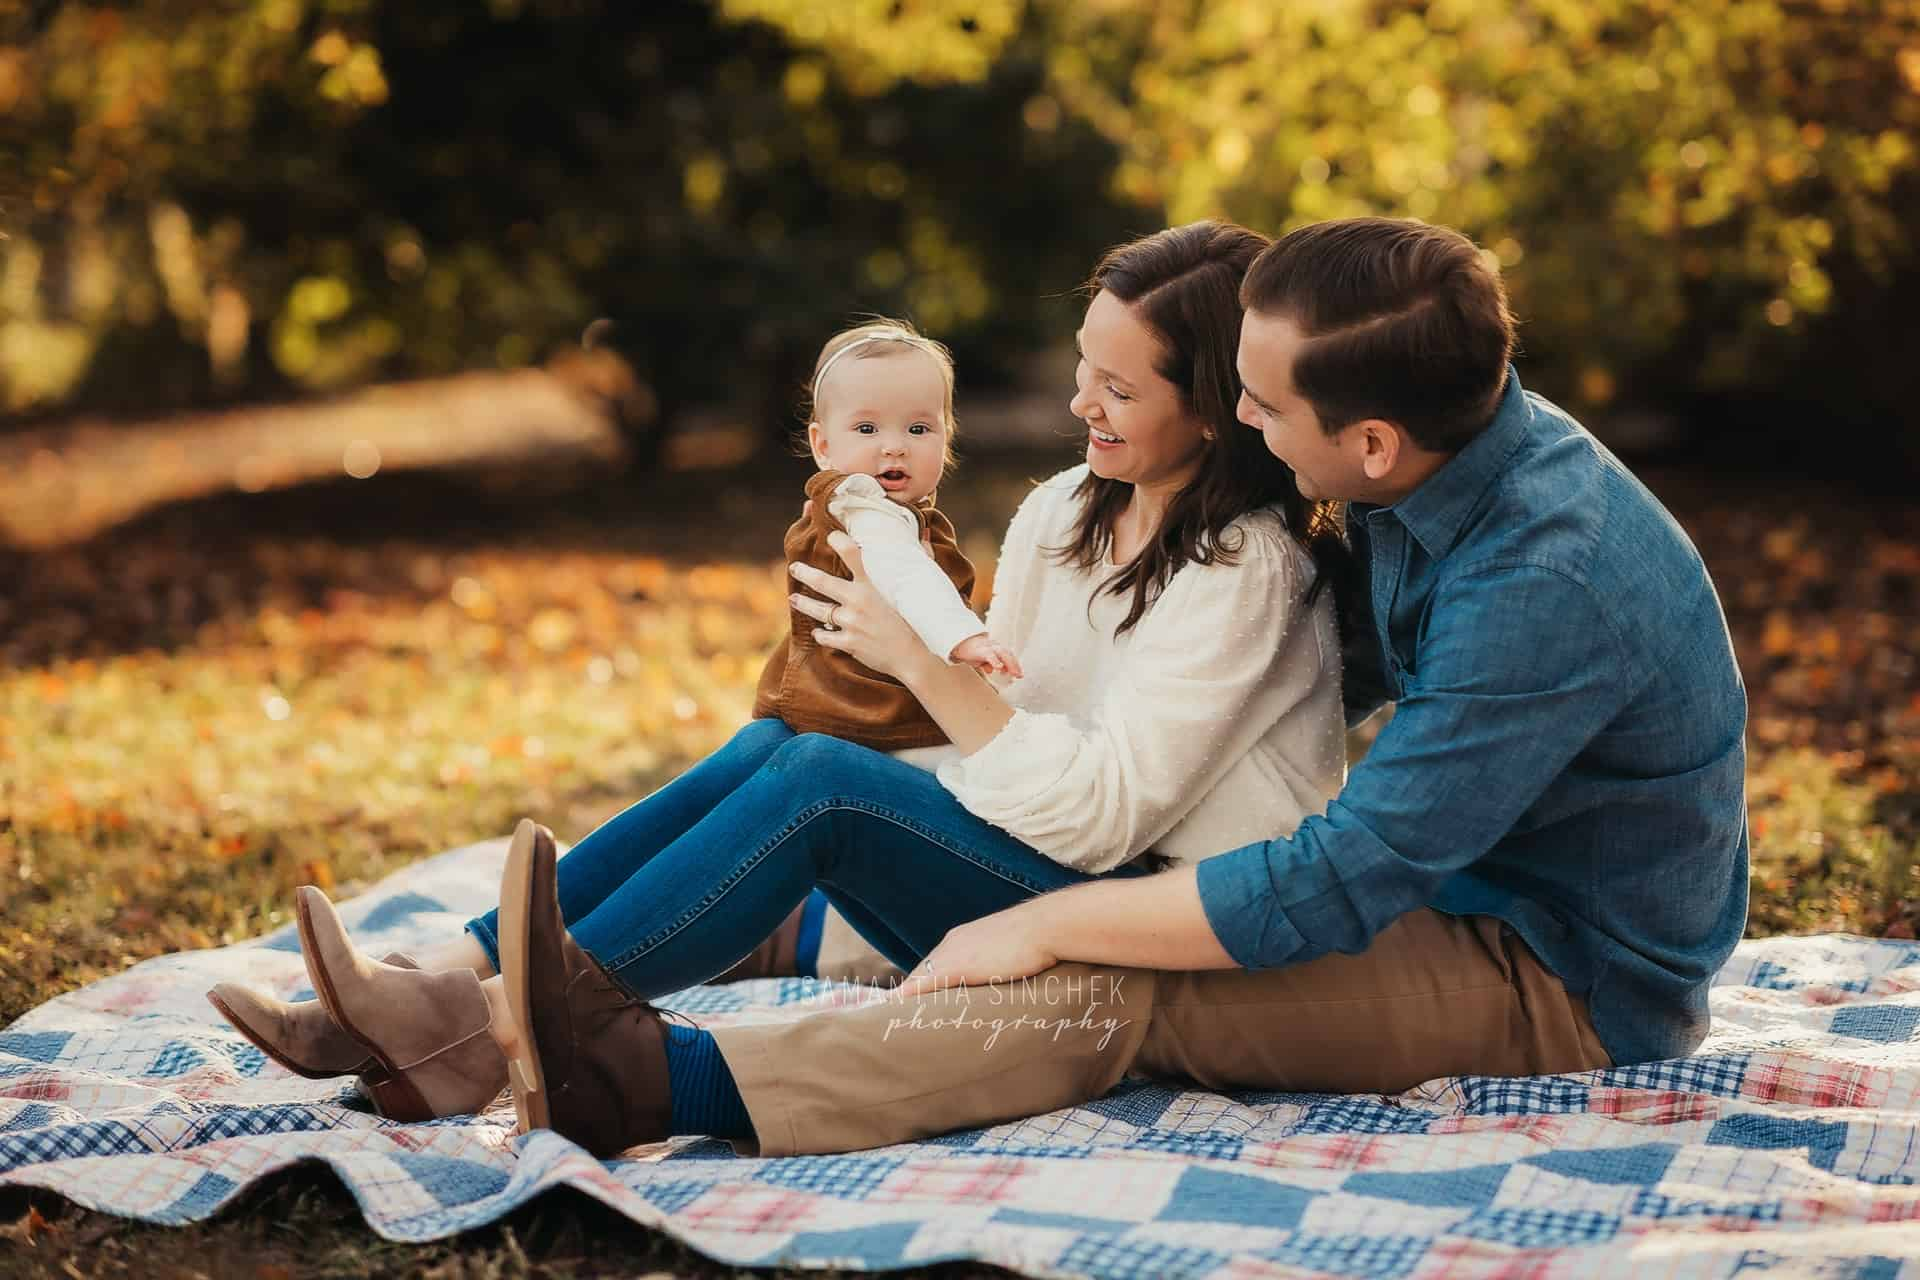 family session at Glenwood gardens with photographer Samantha Sinchek